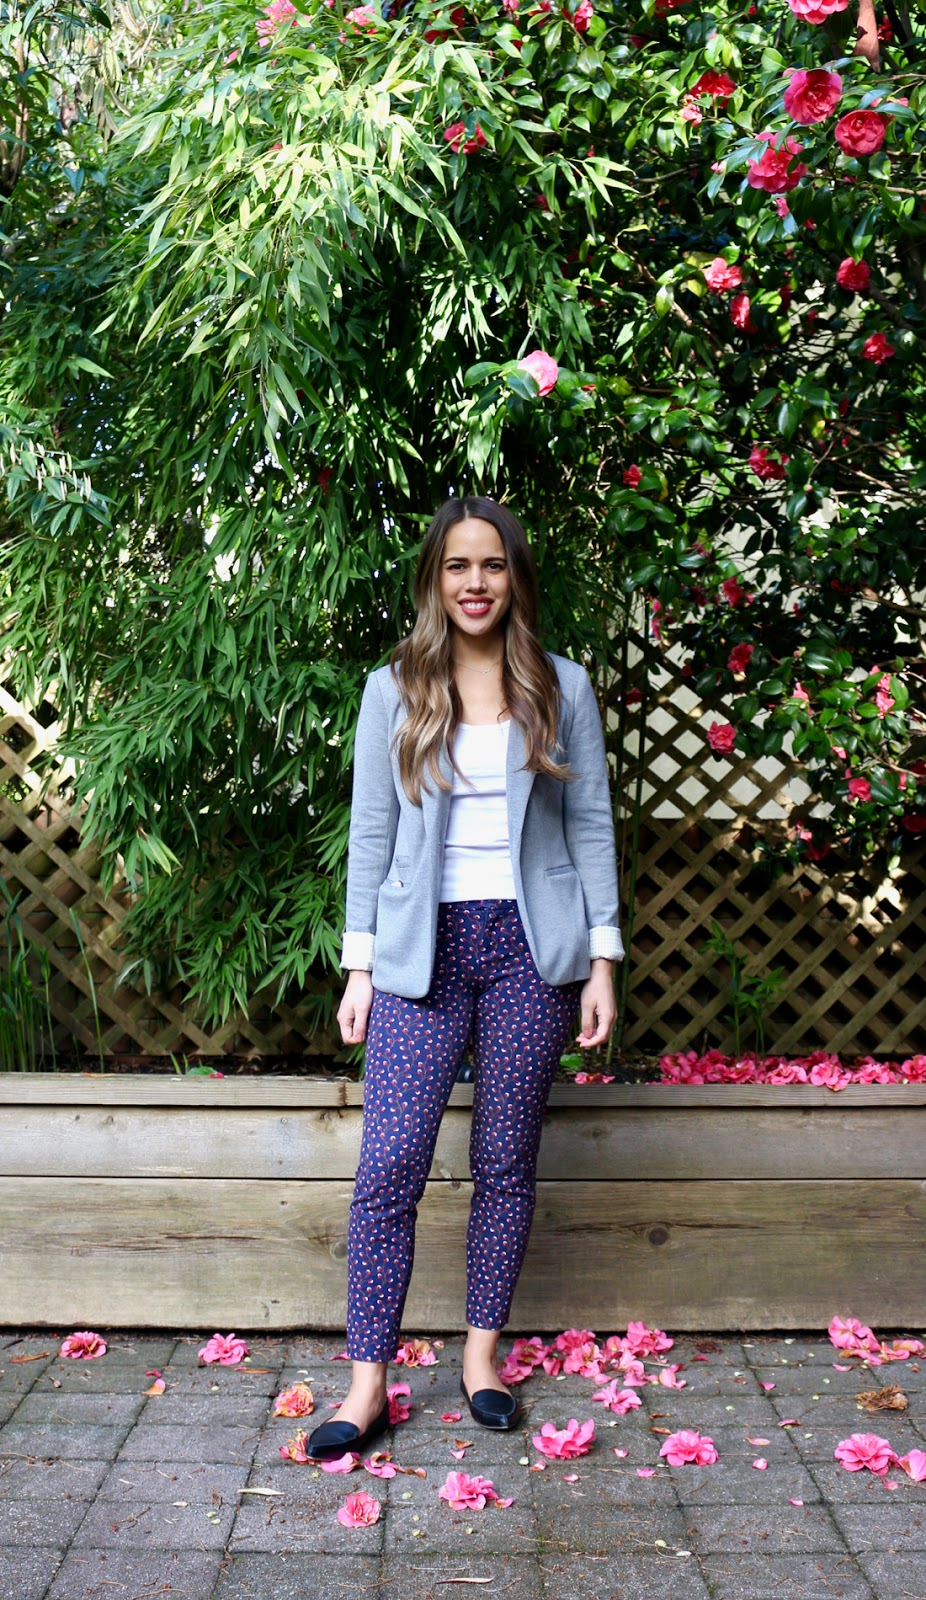 Jules in Flats - Patterned Pants with Blazer (Business Casual Spring Workwear on a Budget)